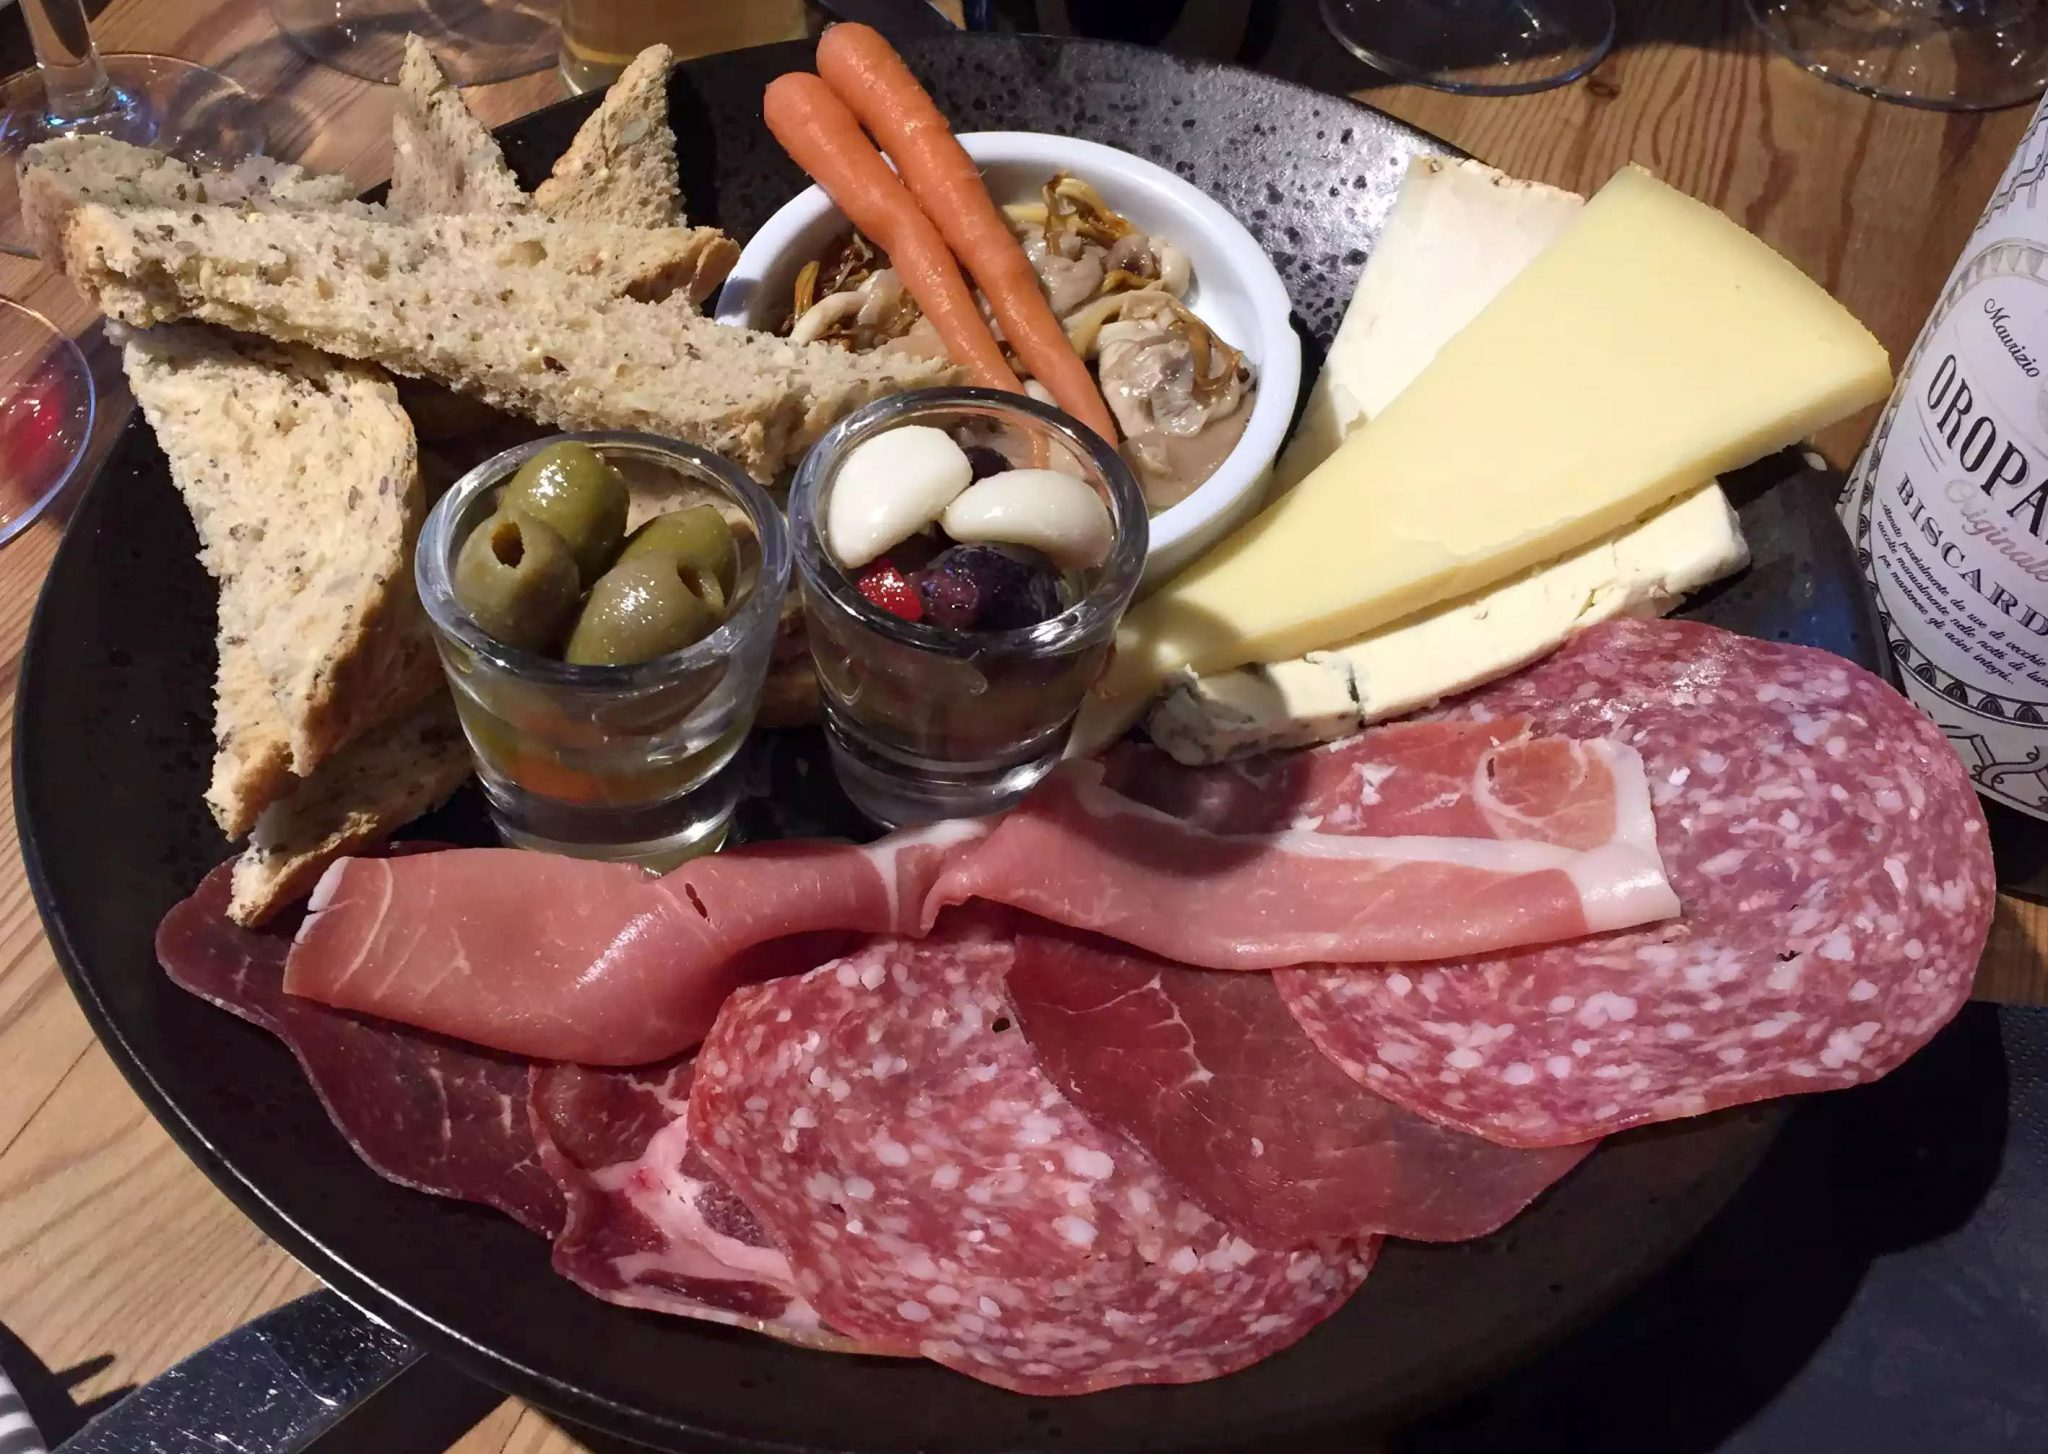 Great Northern Pub St Albans Wine Tasting Dinner Antipasti Platter Salami Prosciutto Bresaola Olives Cheese Pickled Mushrooms